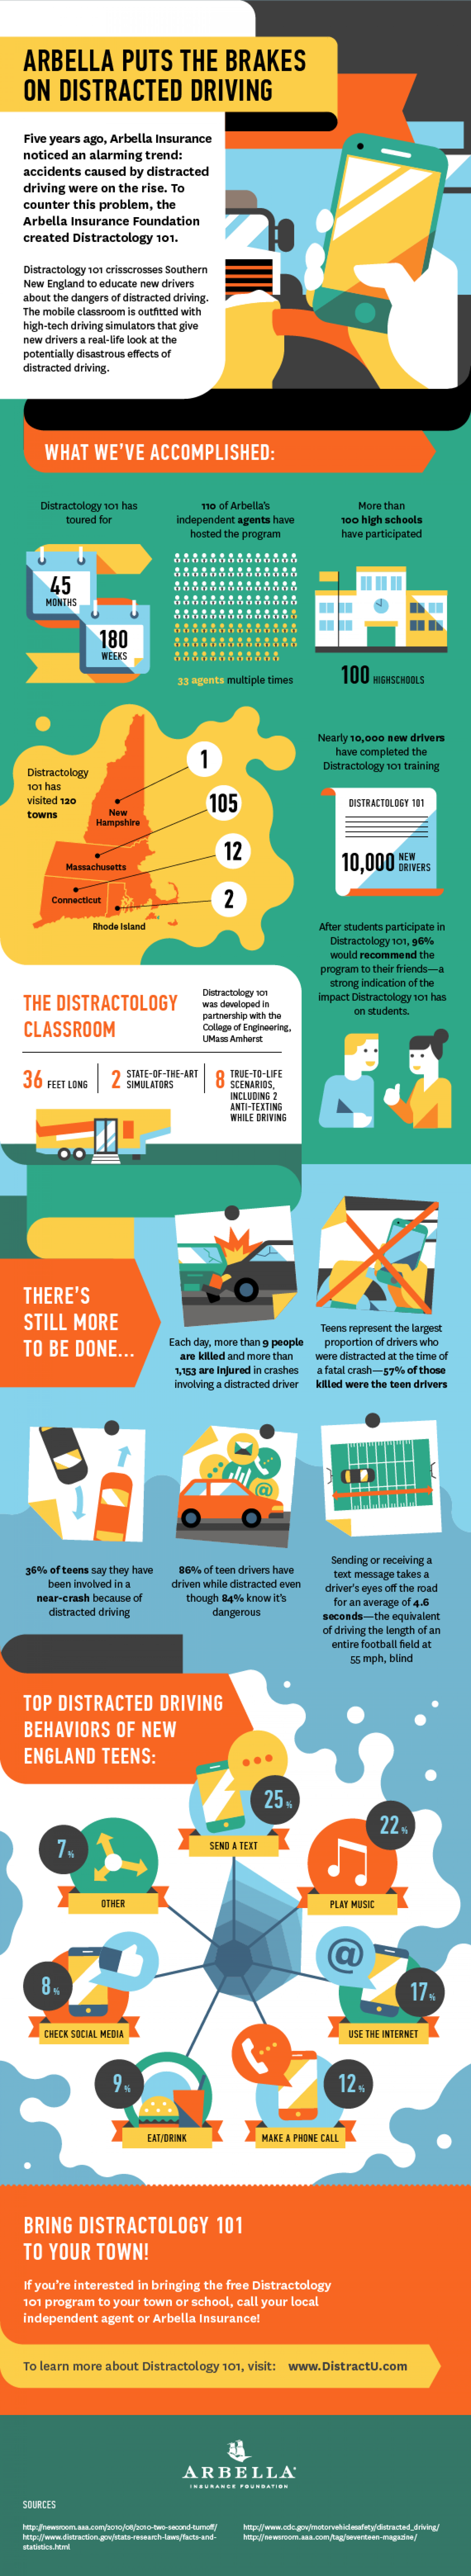 Arbella Puts the Brakes on Distracted Driving Infographic